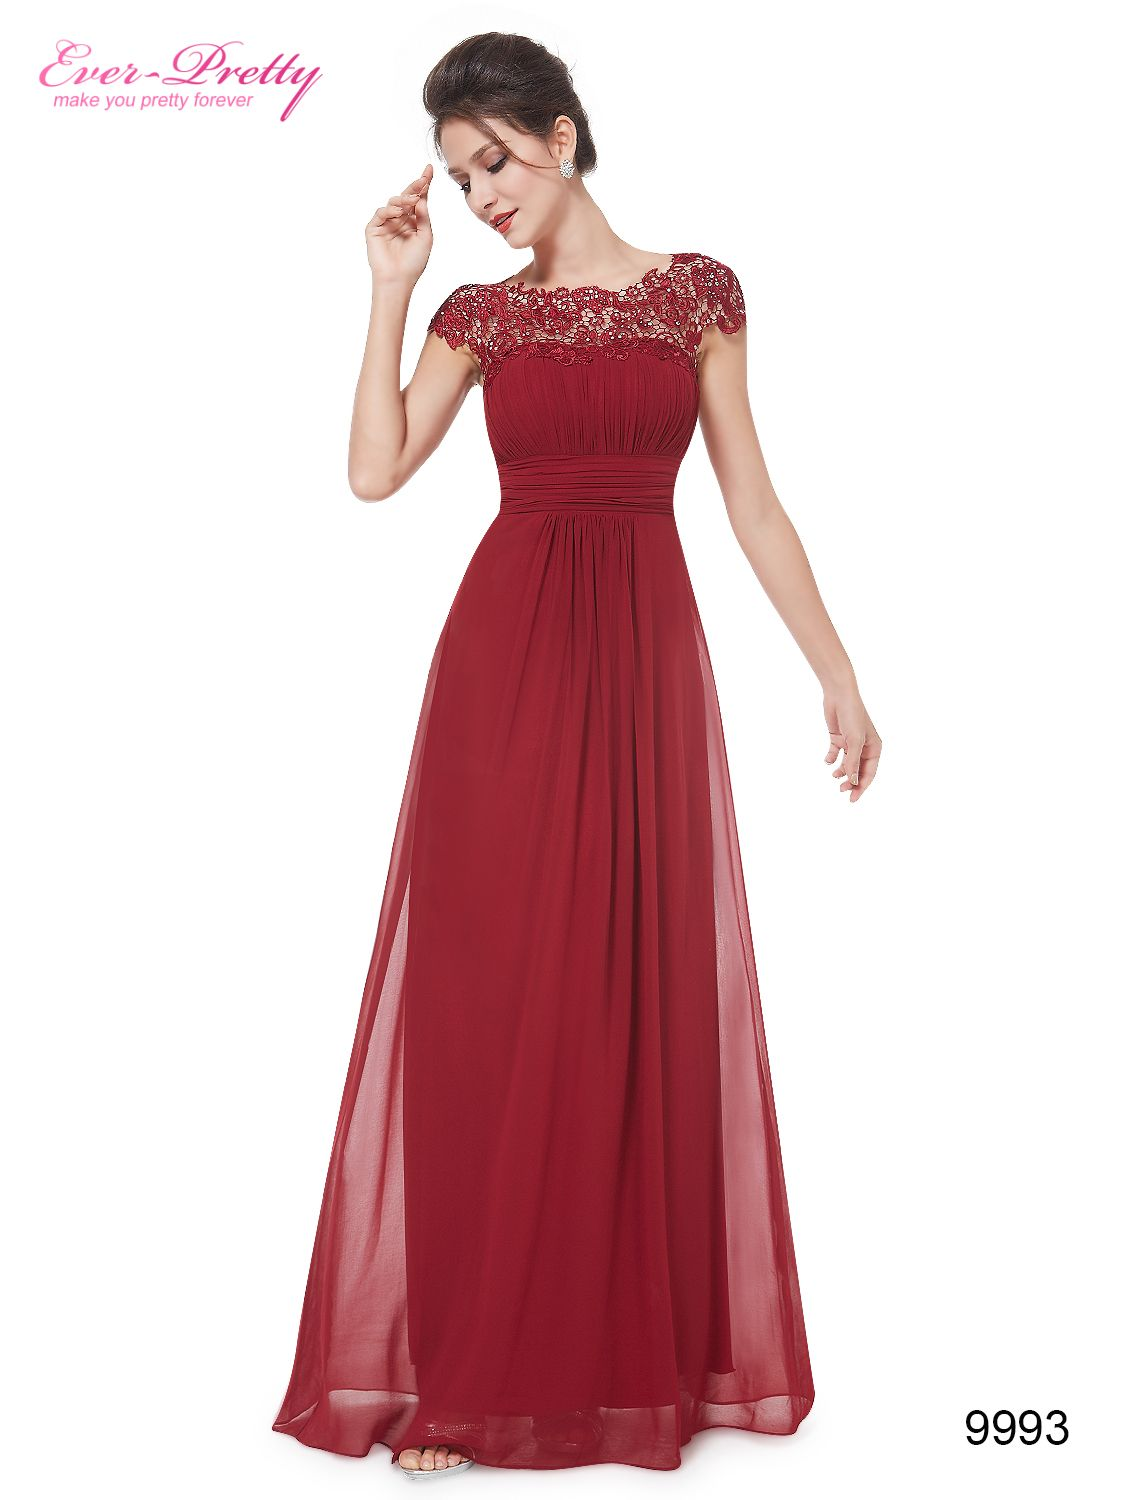 Lace cap sleeve evening gown neckline prom and formal